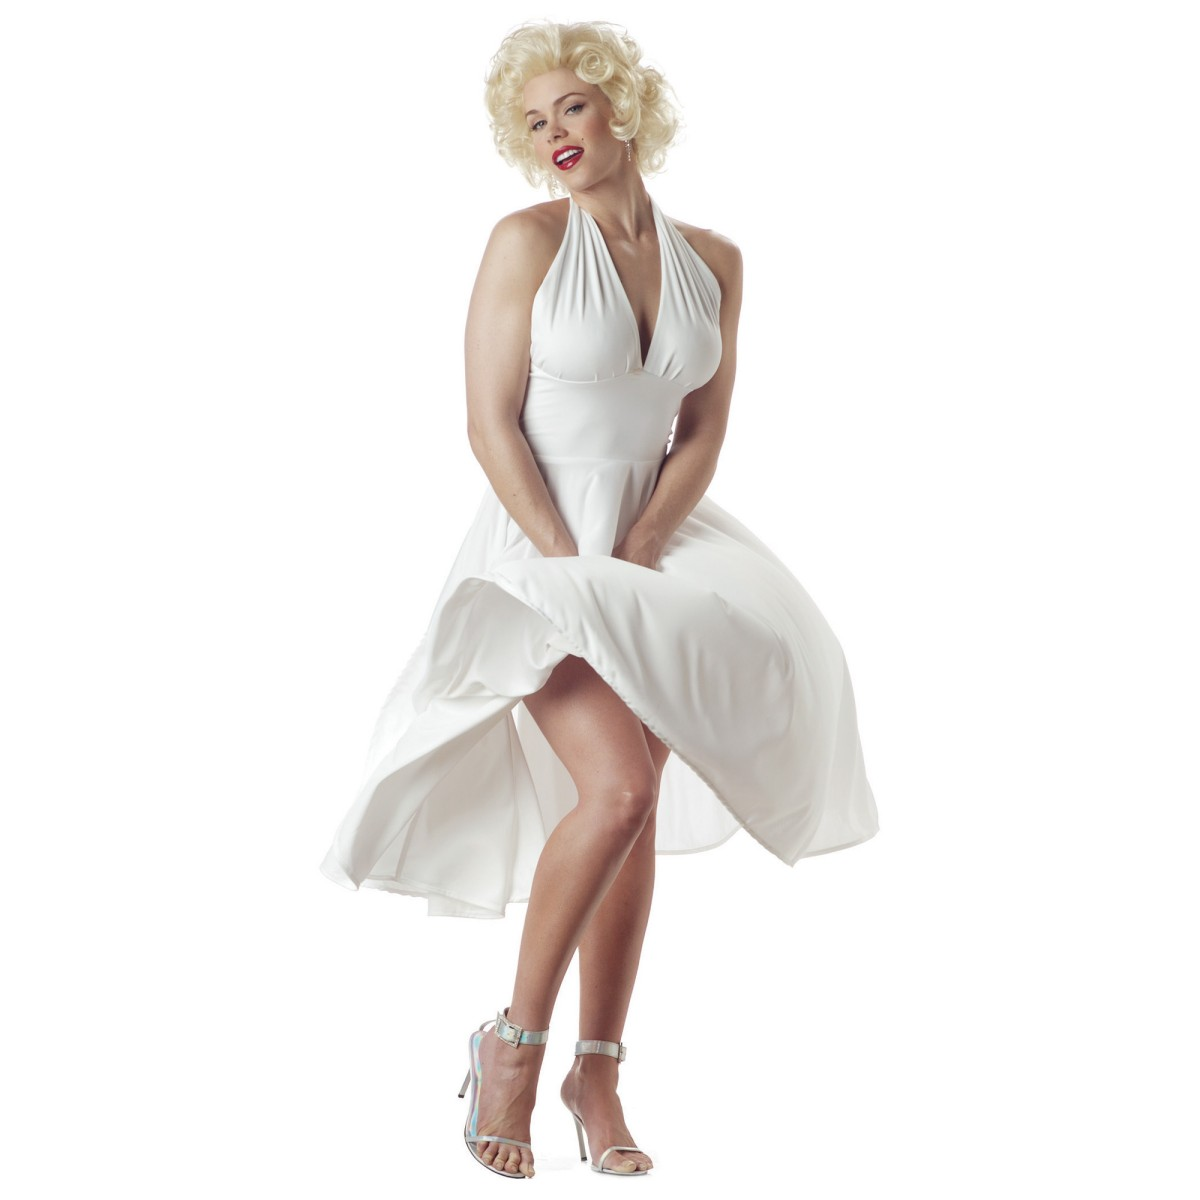 c11 licensed marilyn monroe sexy fancy dress adult costume. Black Bedroom Furniture Sets. Home Design Ideas